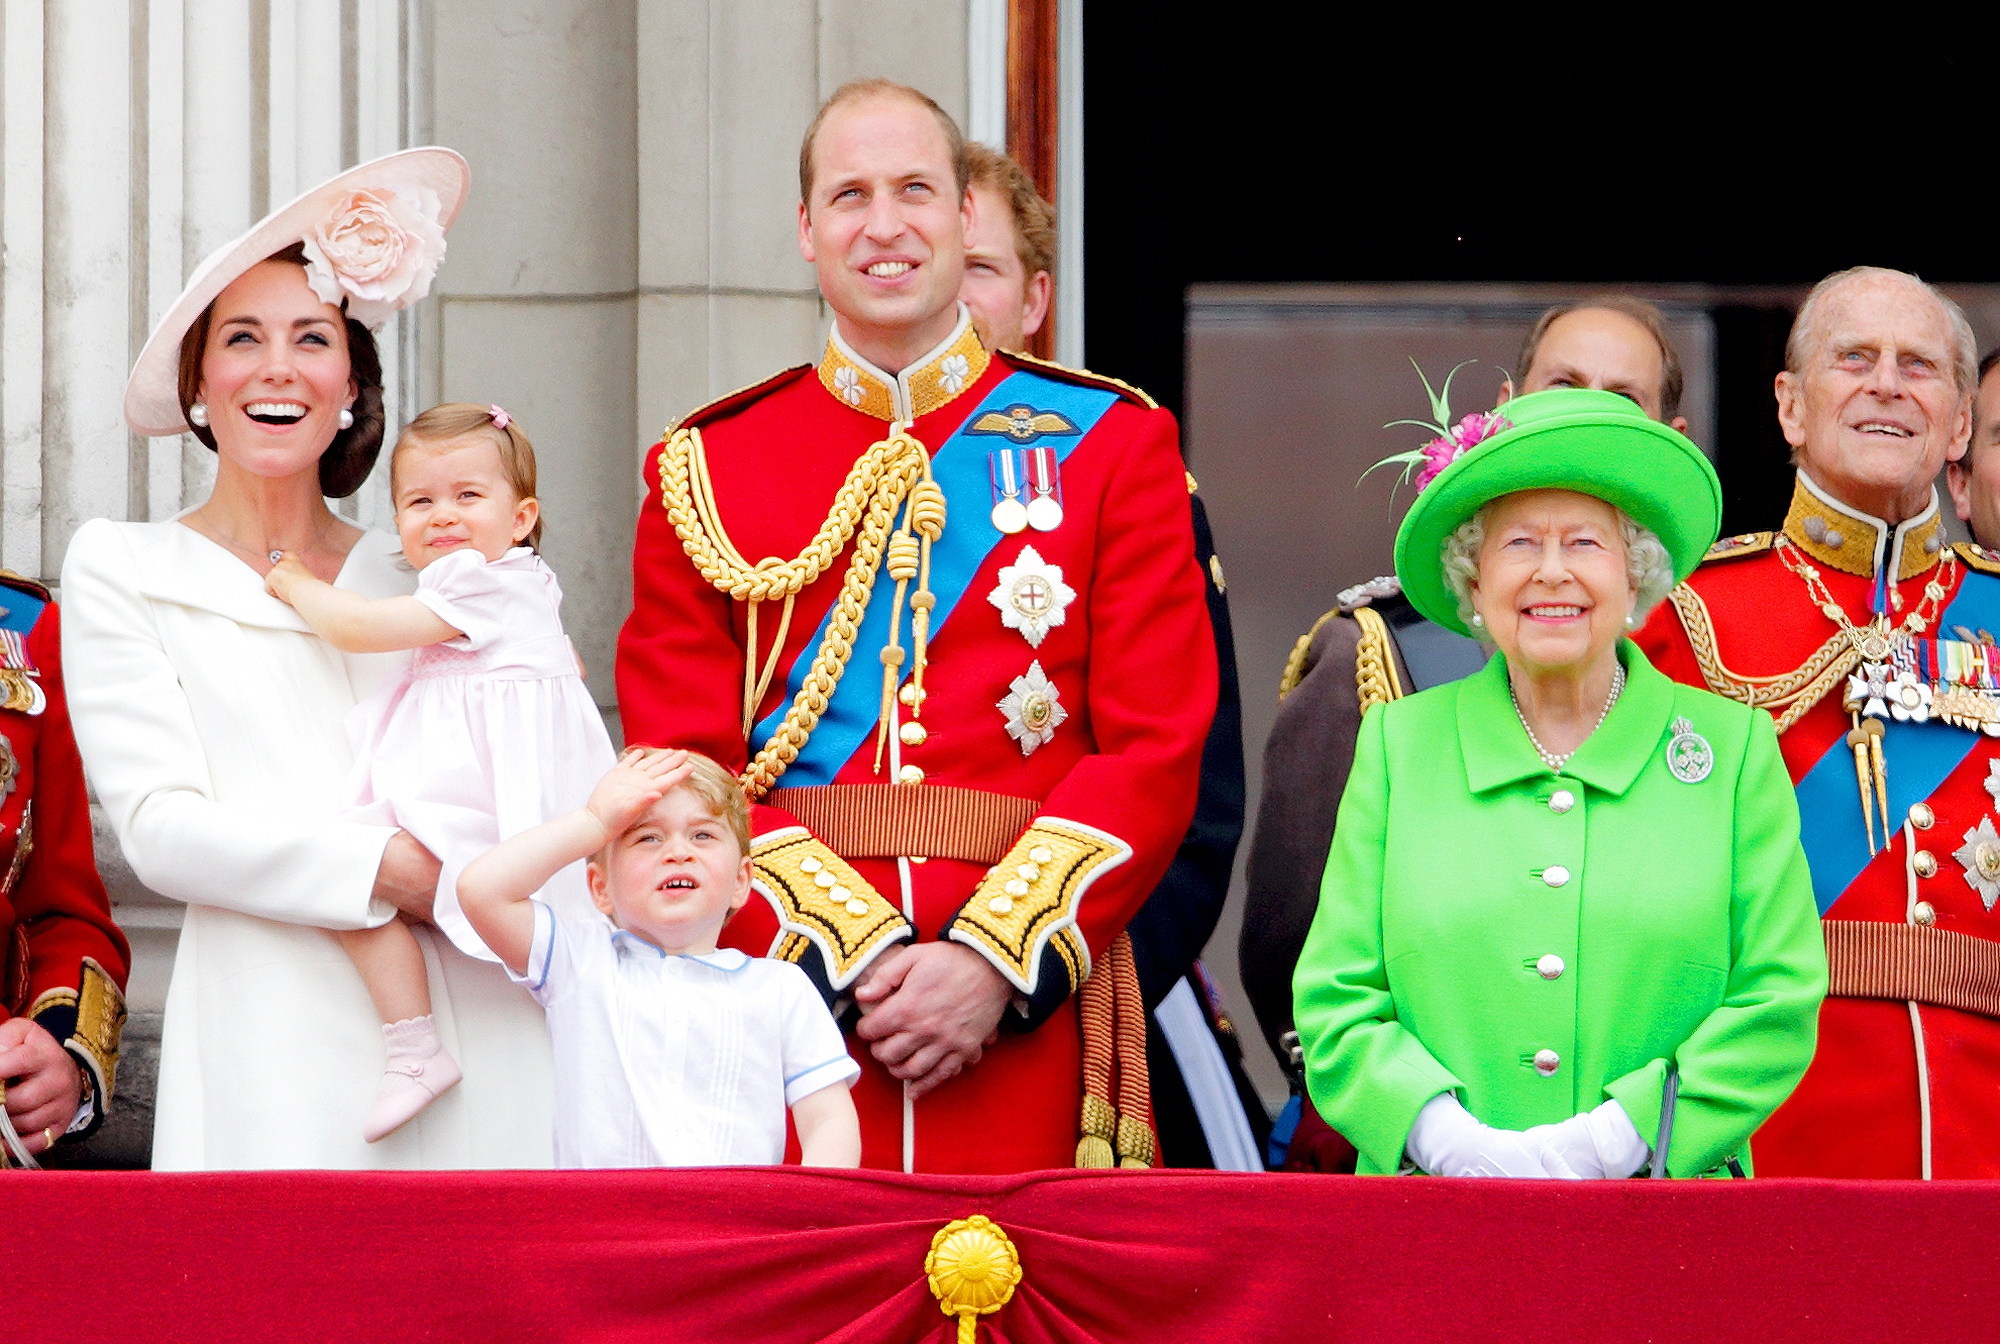 Kate Middleton, Princess Charlotte, Prince George, Prince William, Prince Harry and Queen Elizabeth